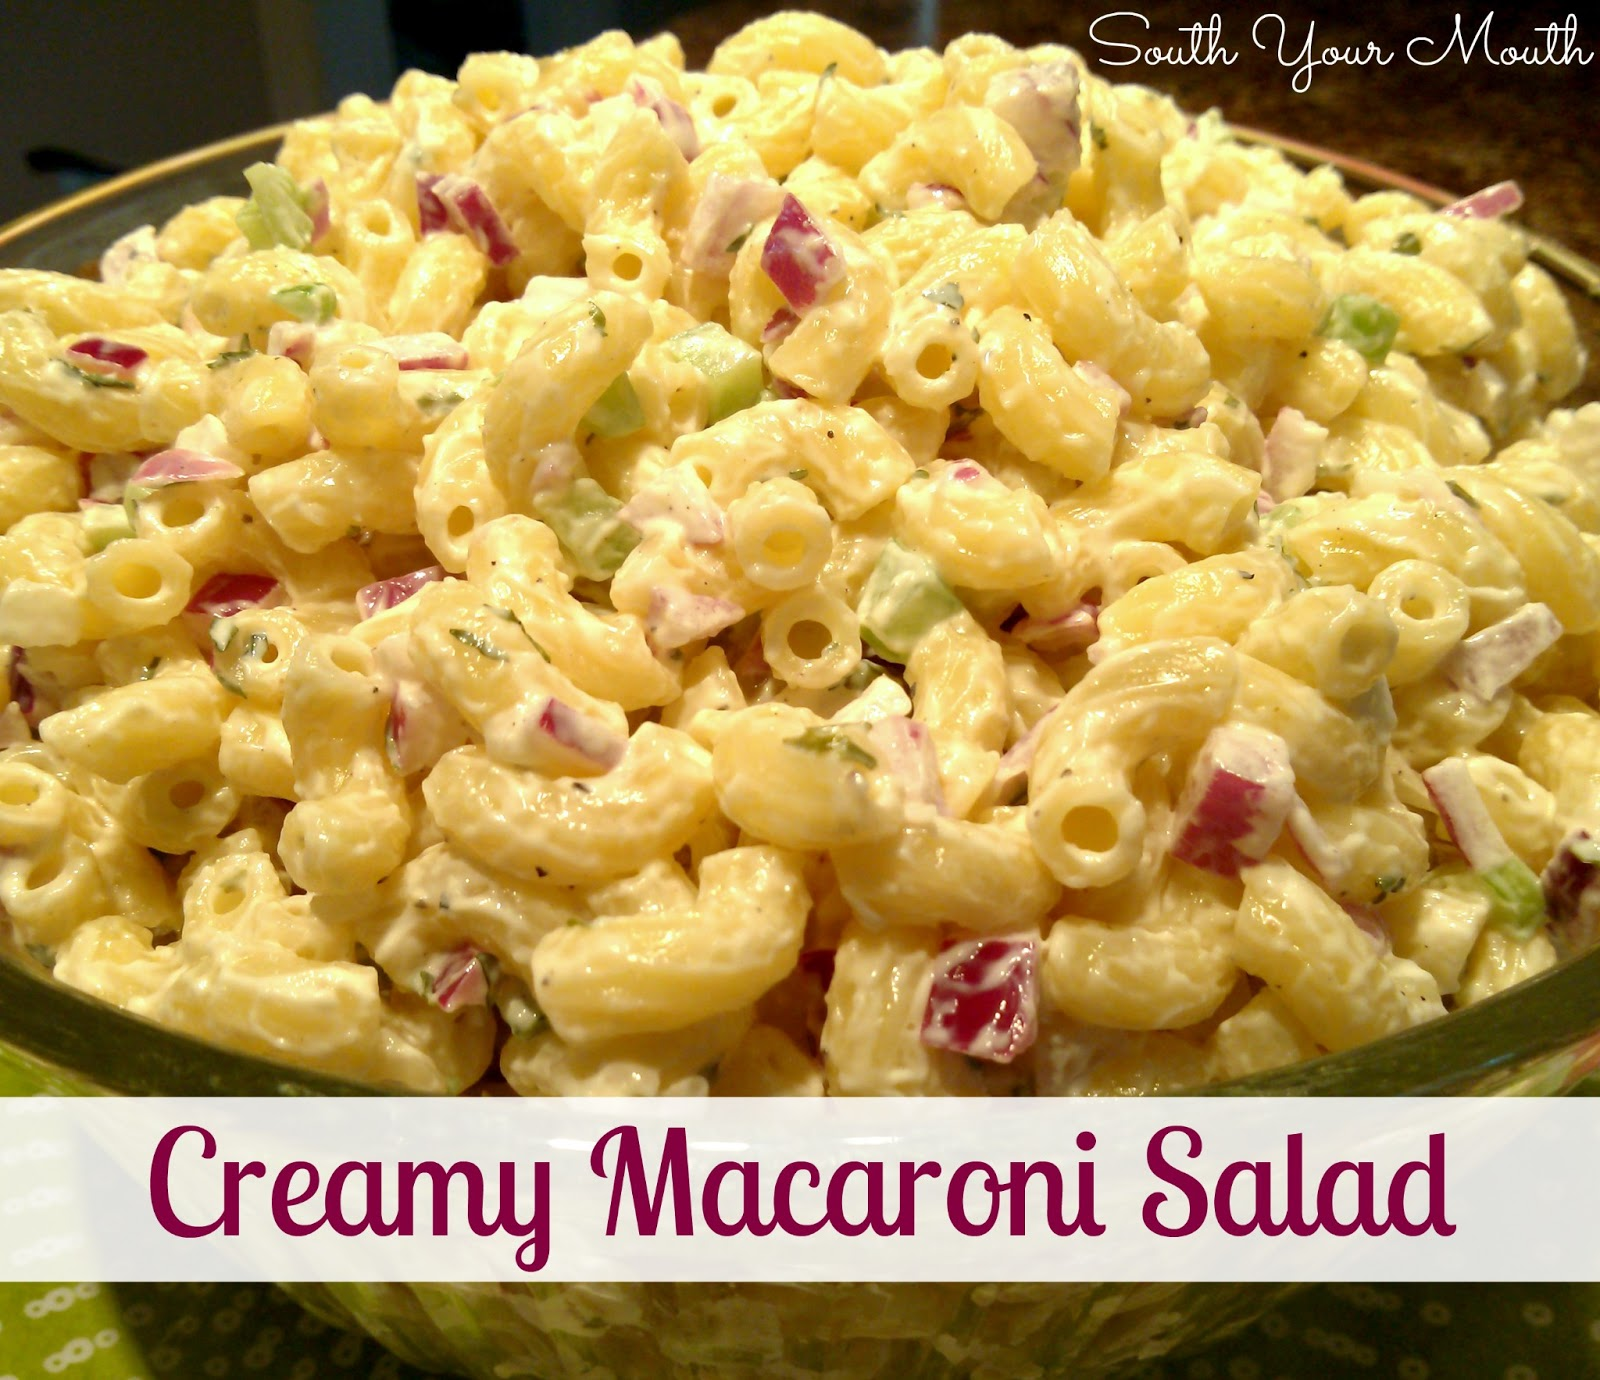 Easy Macaroni Salad Recipe Creamy macaroni salad